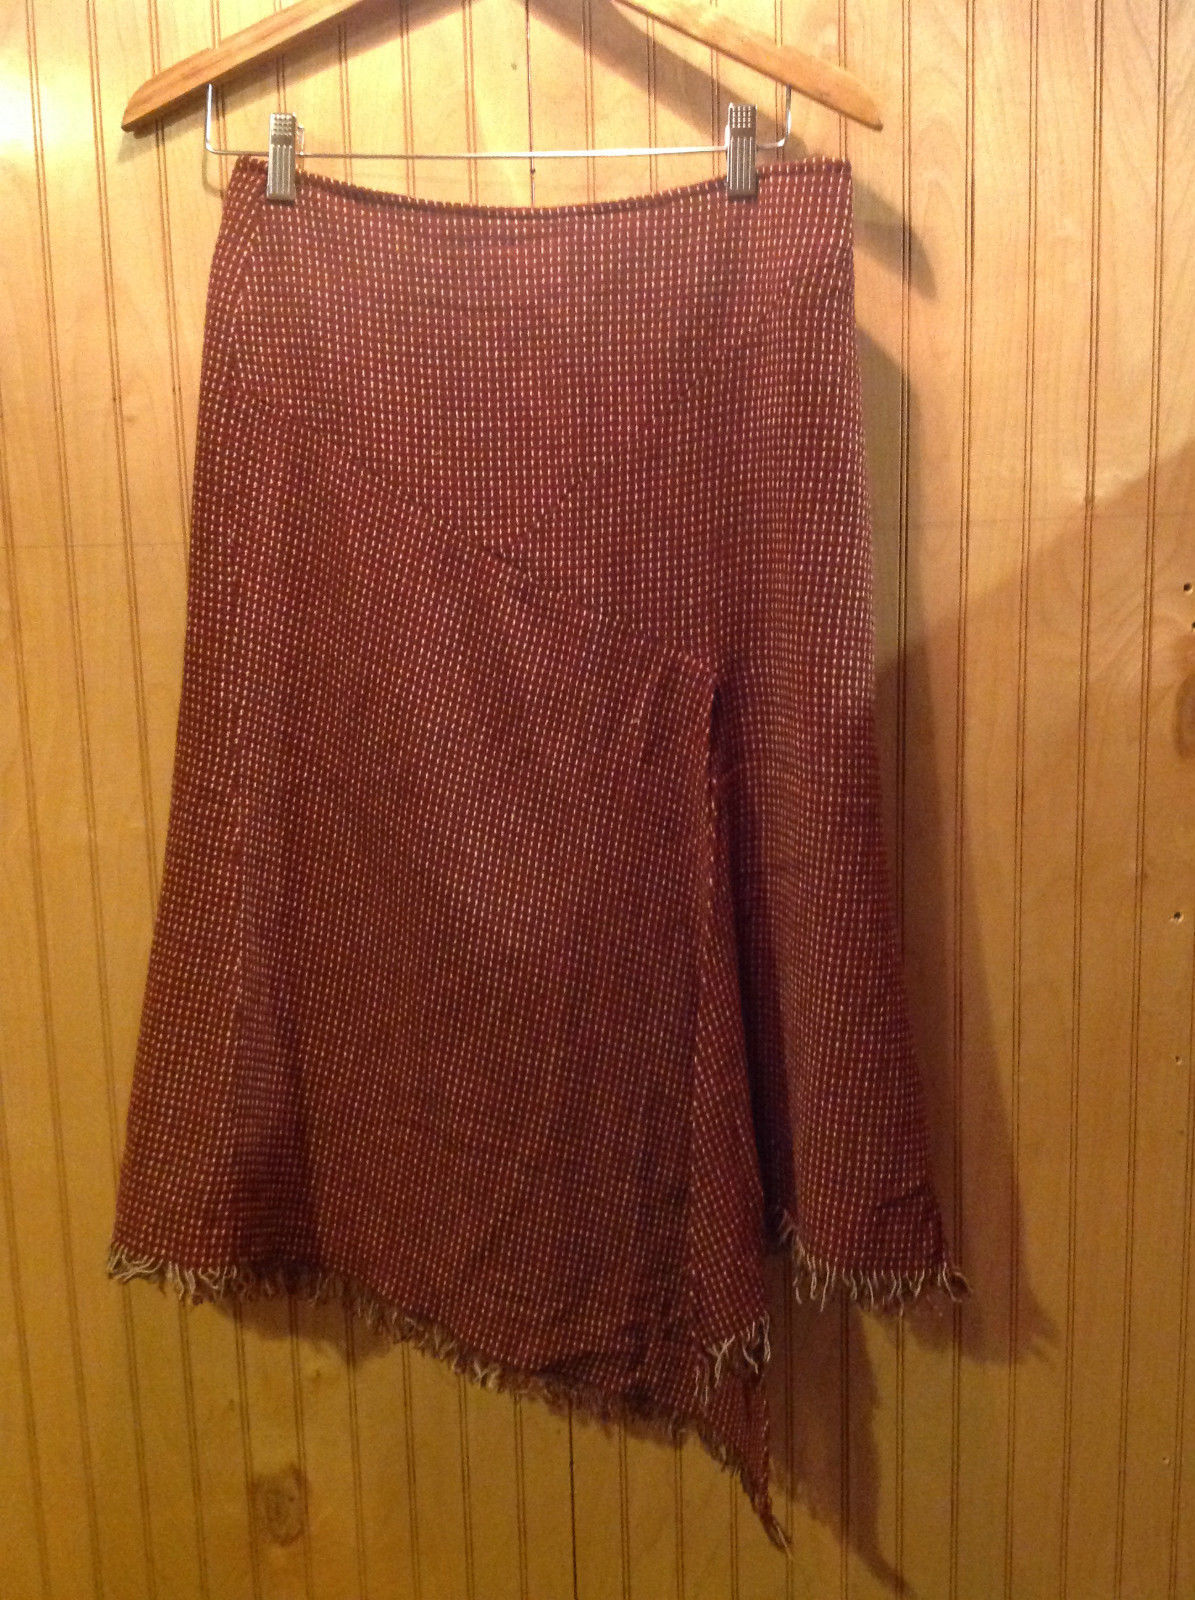 Parameter Size 6 Woven Casual Skirt Red Tan Brown Earthly Toned Pinstriped